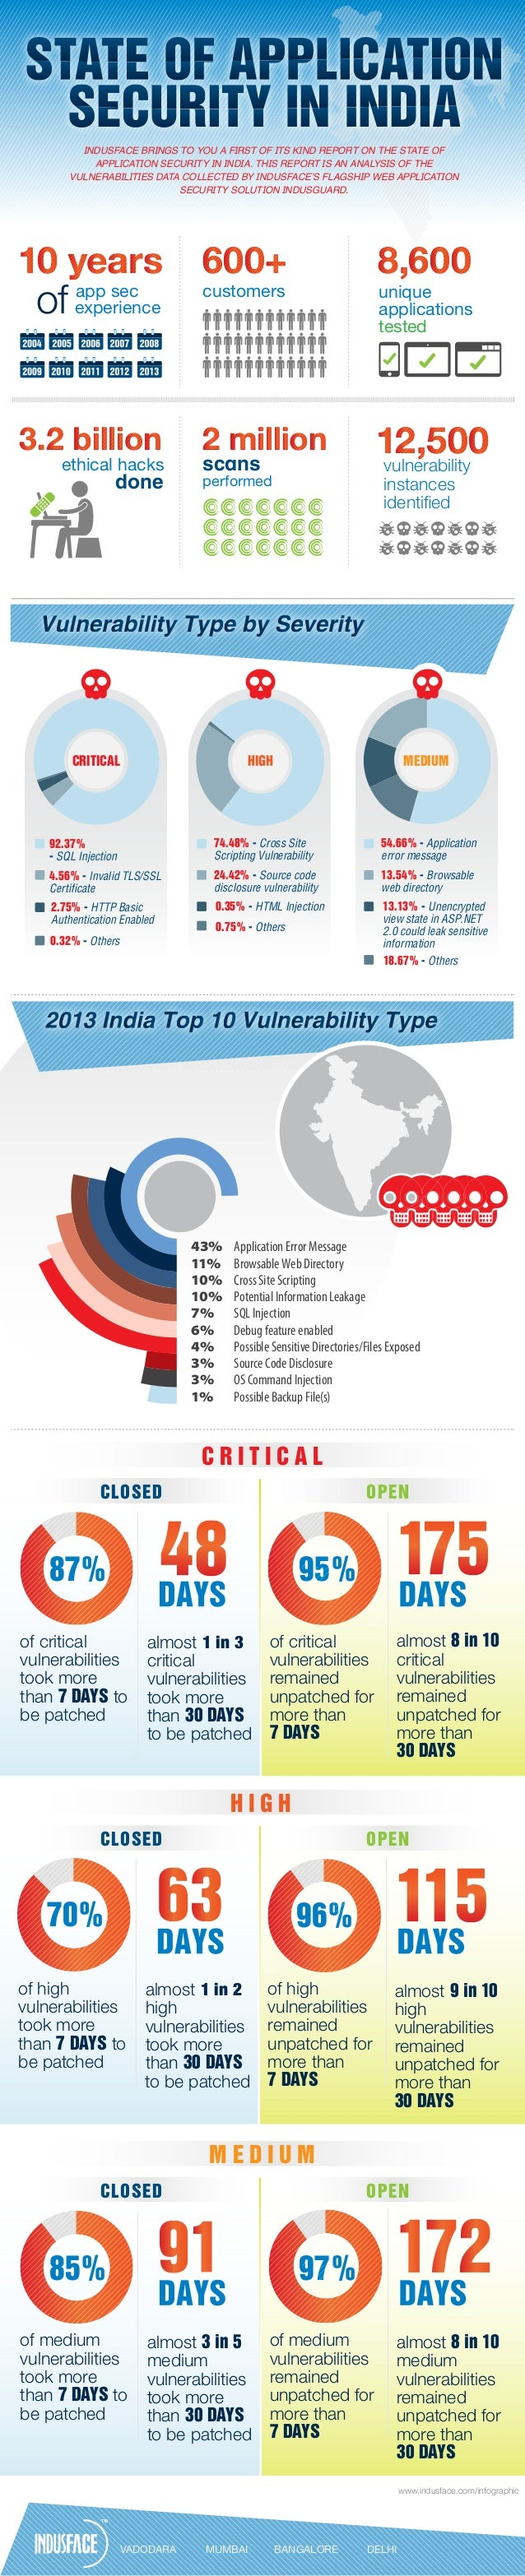 State of application security in India- Infographic by Indusface